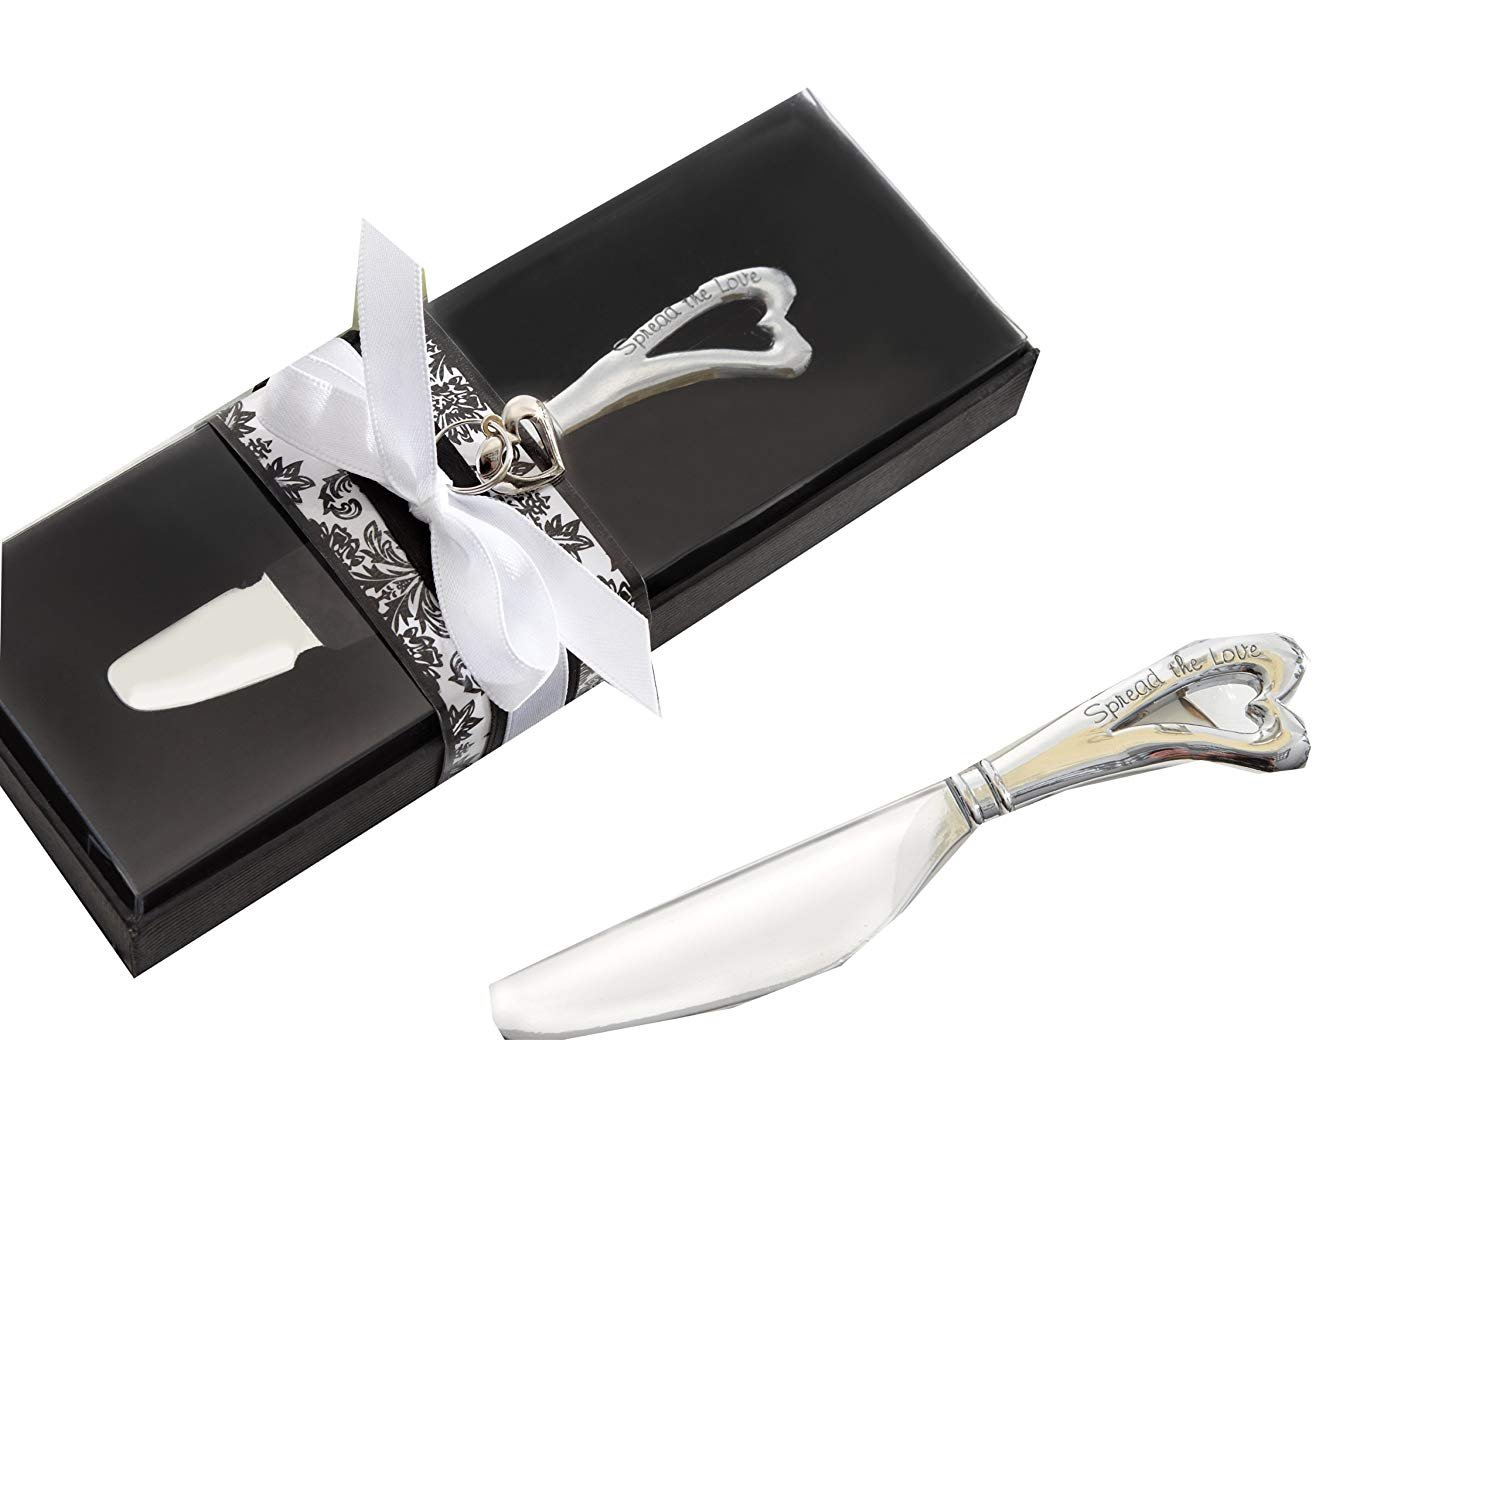 120 Kate Aspen Silver''Spread The Love'' Chrome Spreader with Heart-Shaped Handle Wedding Favors by Kate Aspen